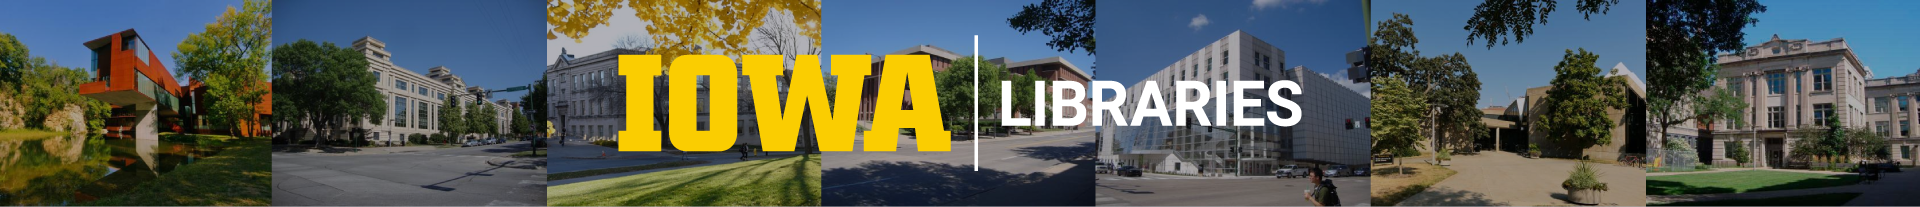 UIowa Libraries Logo and building collage